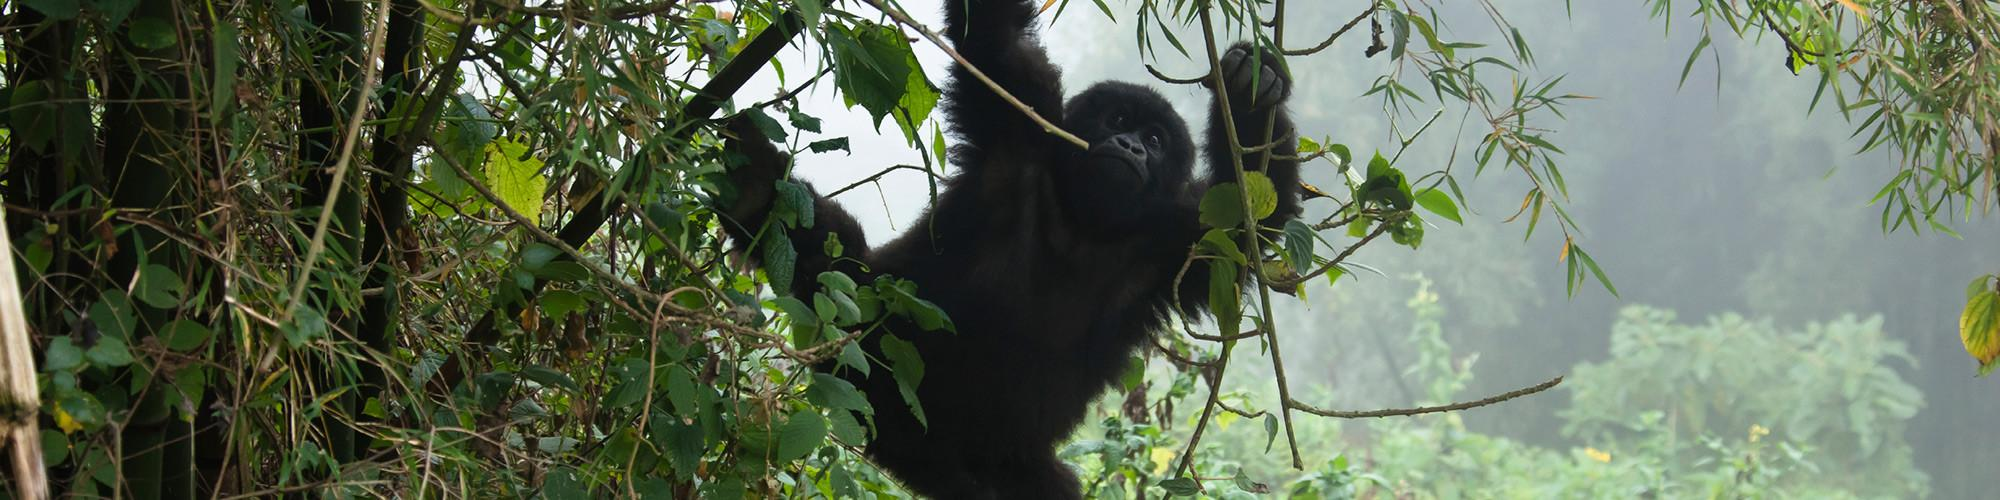 All Rwanda Safari 2 Gorilla Tours (U) Ltd